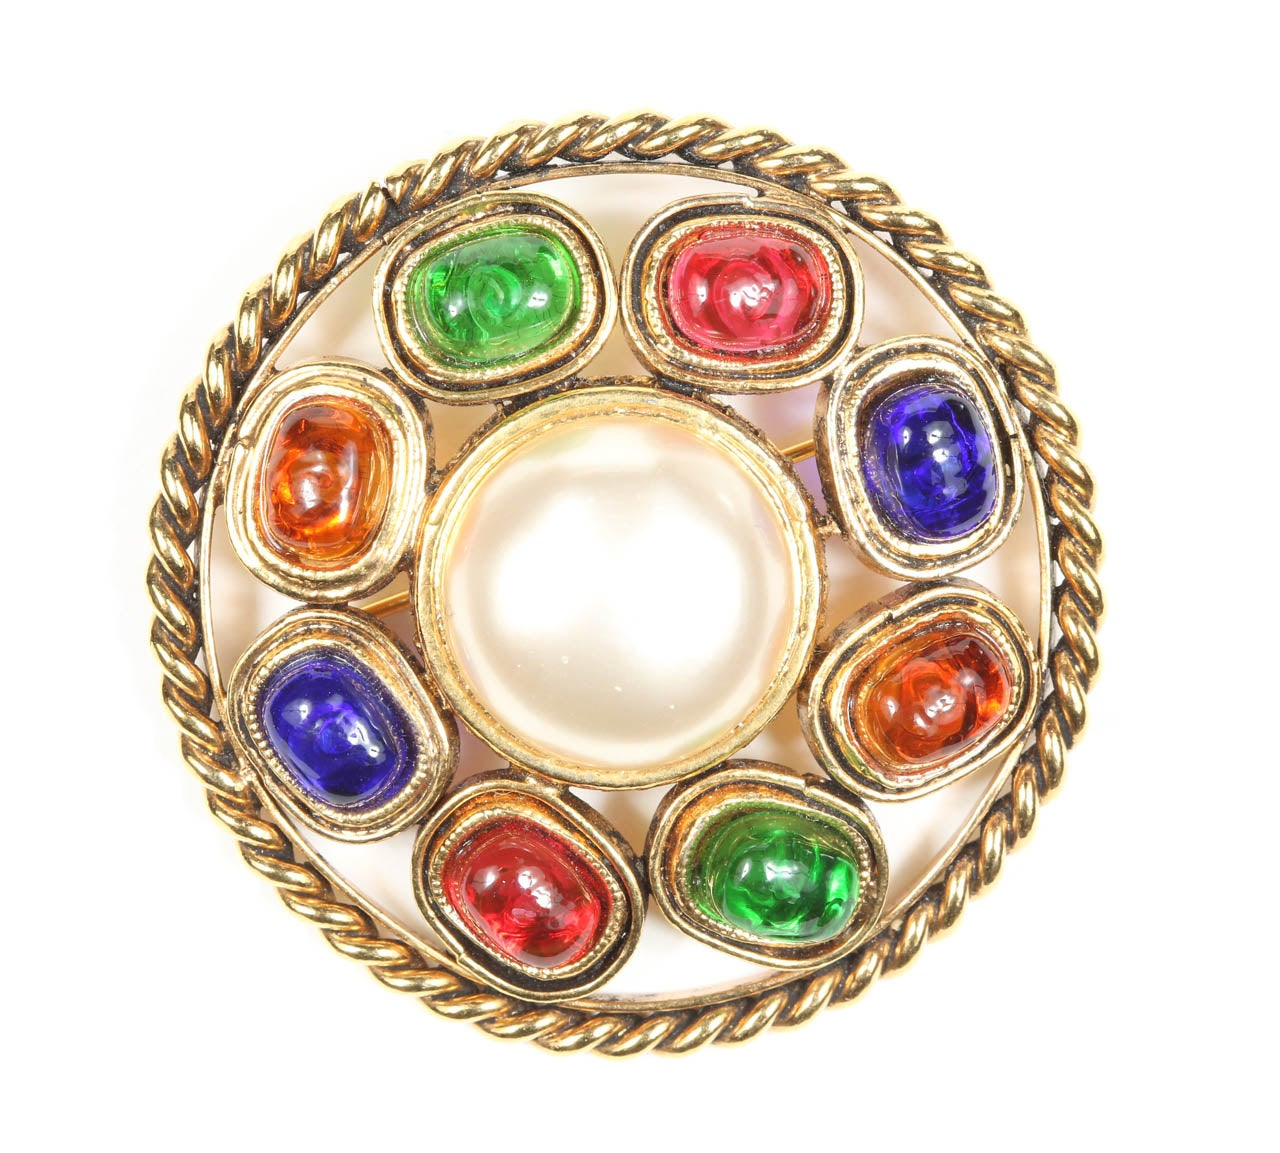 "A colorful Chanel brooch with a ring of colorful poured glass cabochons around a central glass pearl and framed in a gilt metal rope. Marked on the back with the ""Chanel Made in France"" oval cartouche indicating that this is from collection 23,"